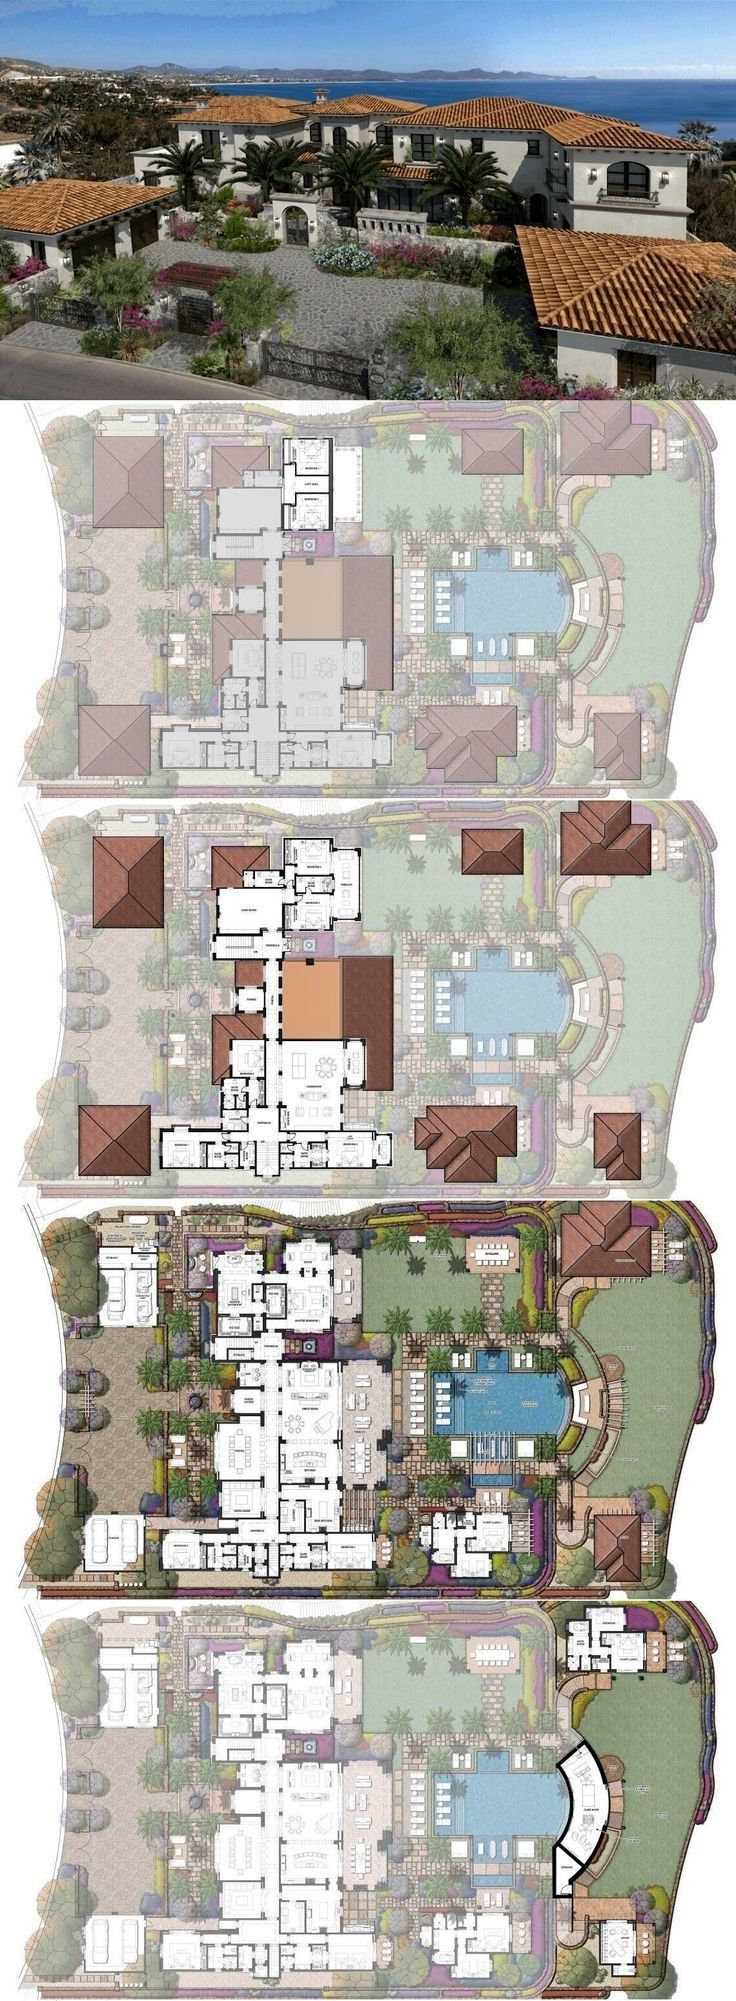 La Romana 4 000 000 In 2020 Luxury House Floor Plans Mansion Floor Plan Sims House Design